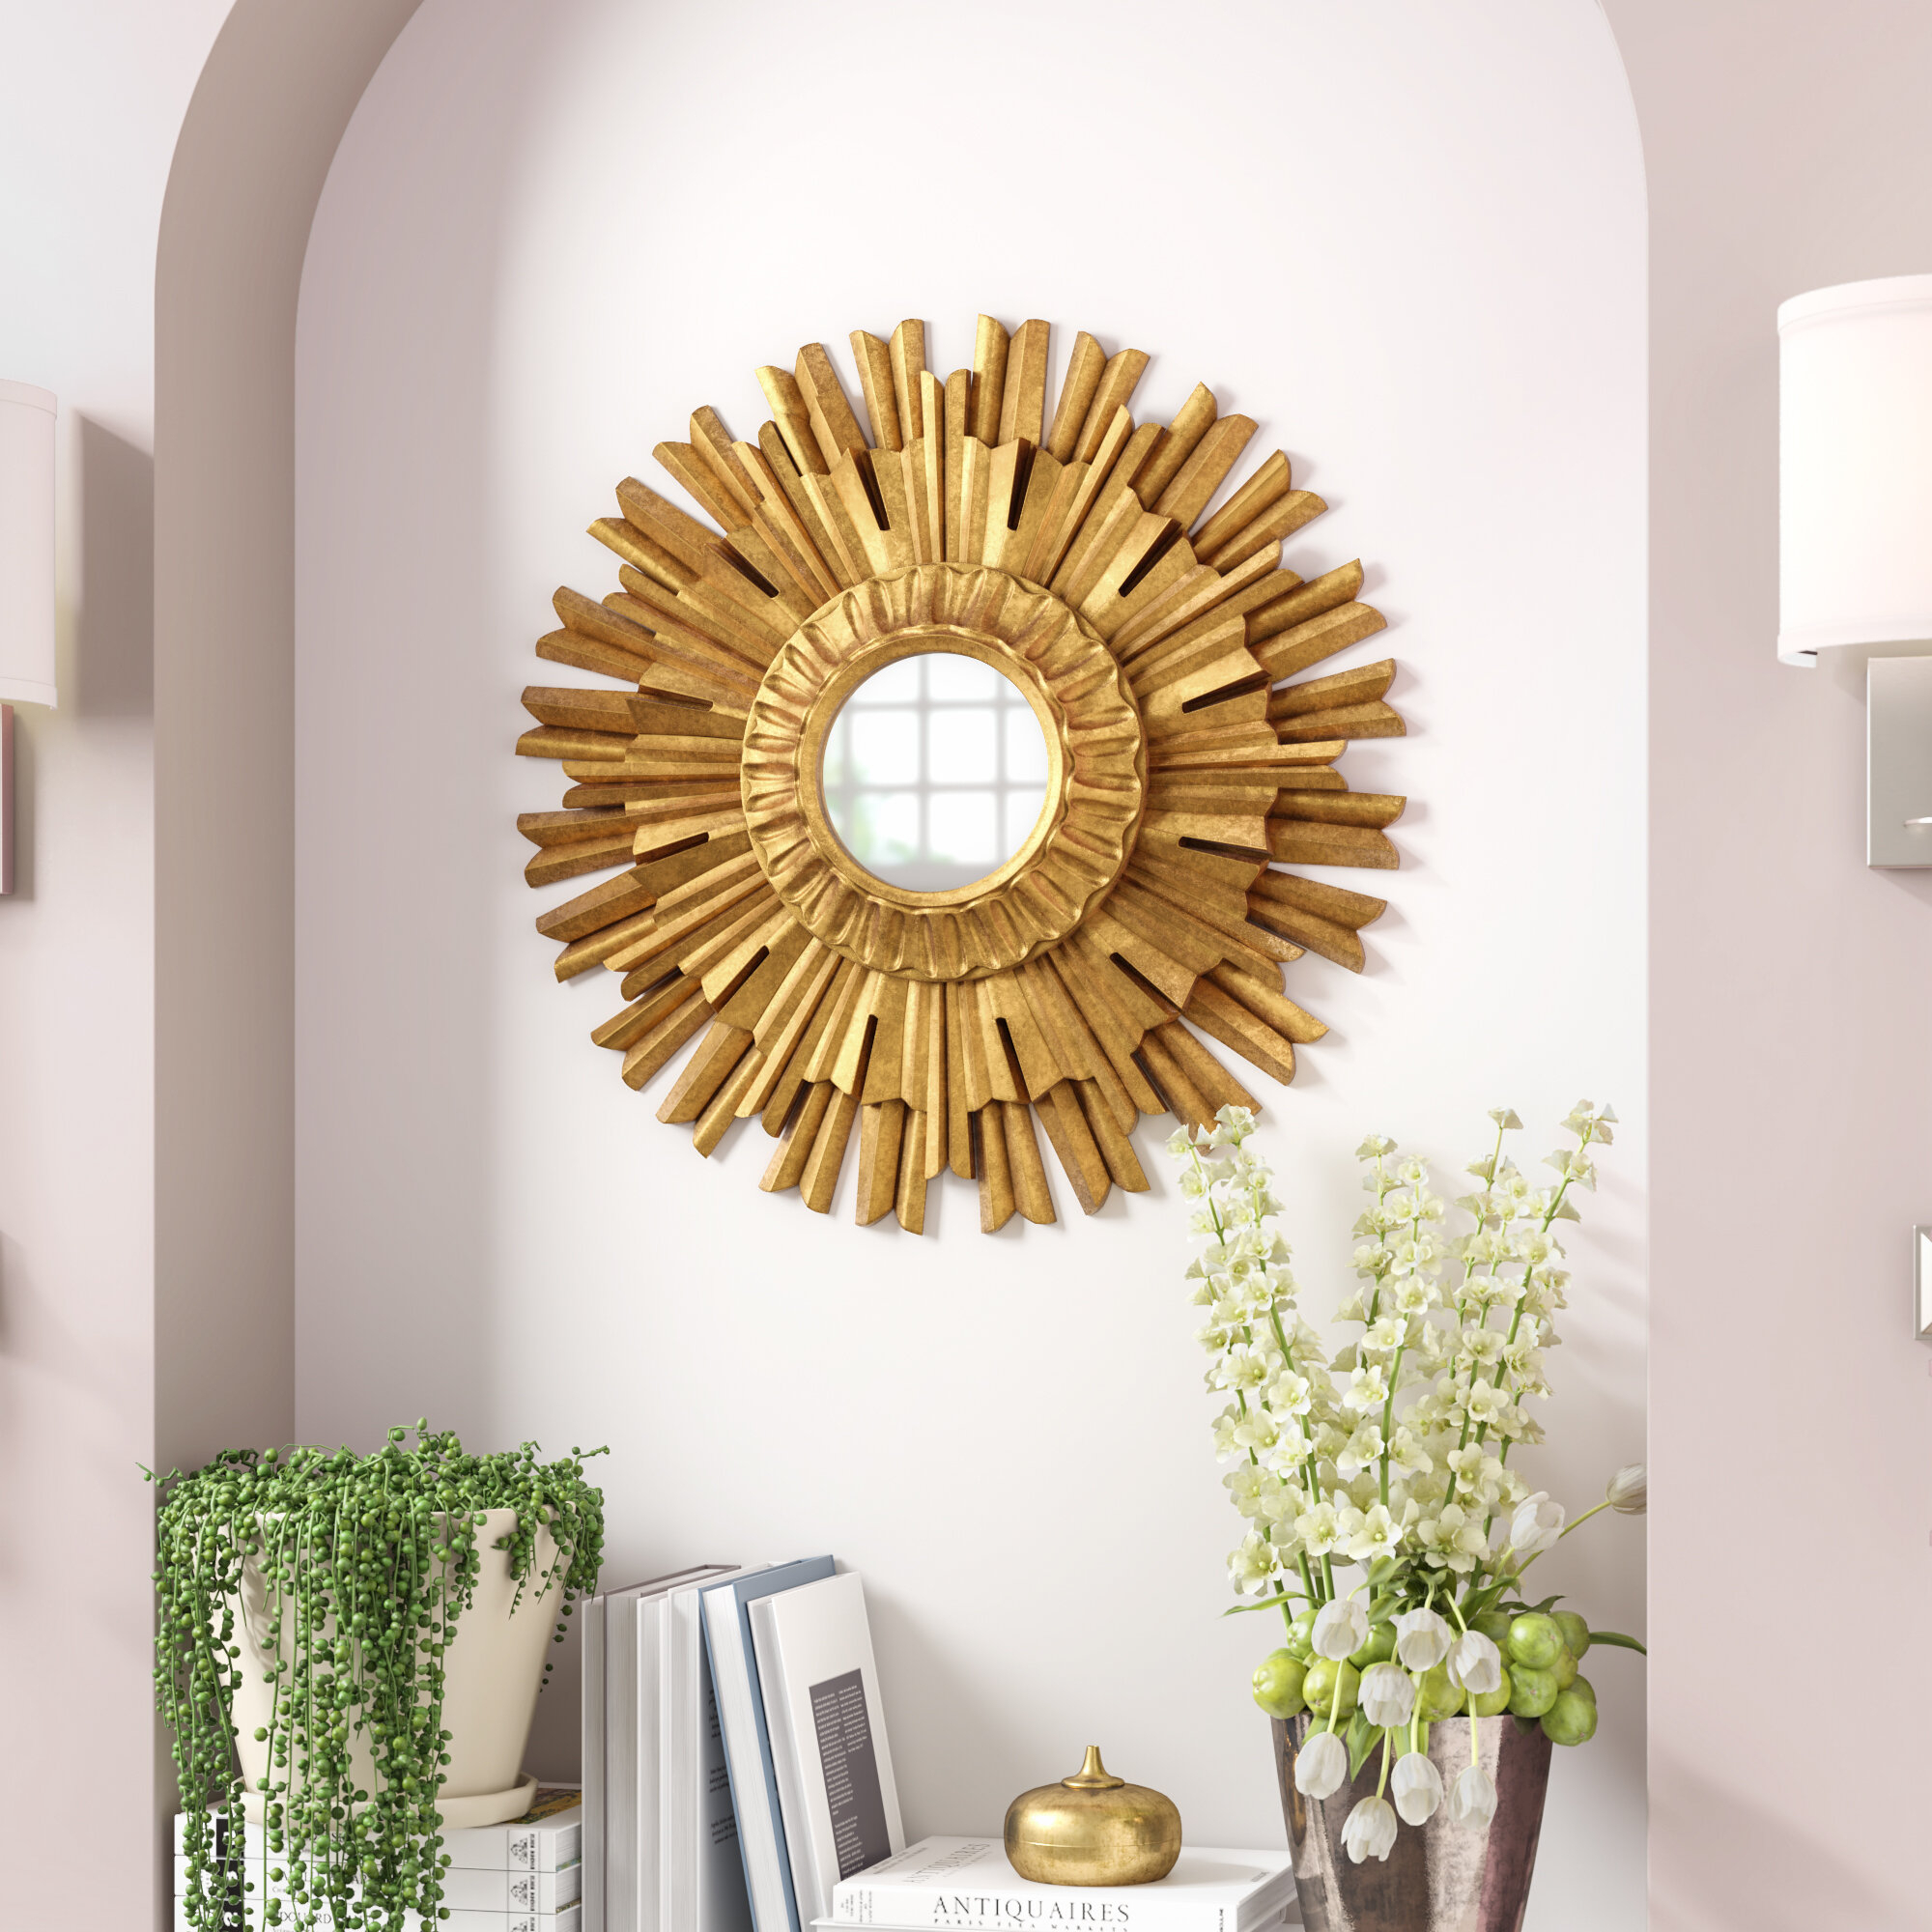 Durkee Circular Wall Mirror Regarding Starburst Wall Decor By Willa Arlo Interiors (View 6 of 30)